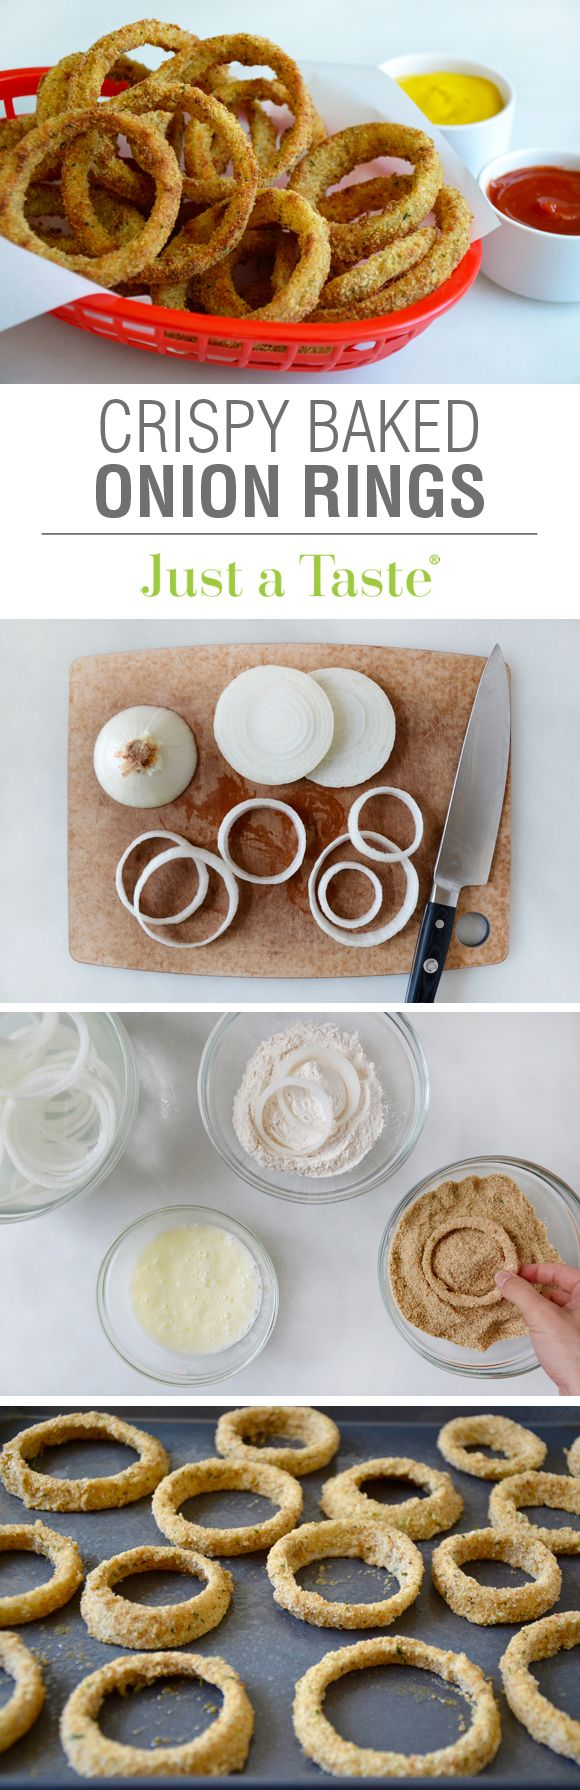 Crispy Baked Onion Rings #recipe via justataste.com